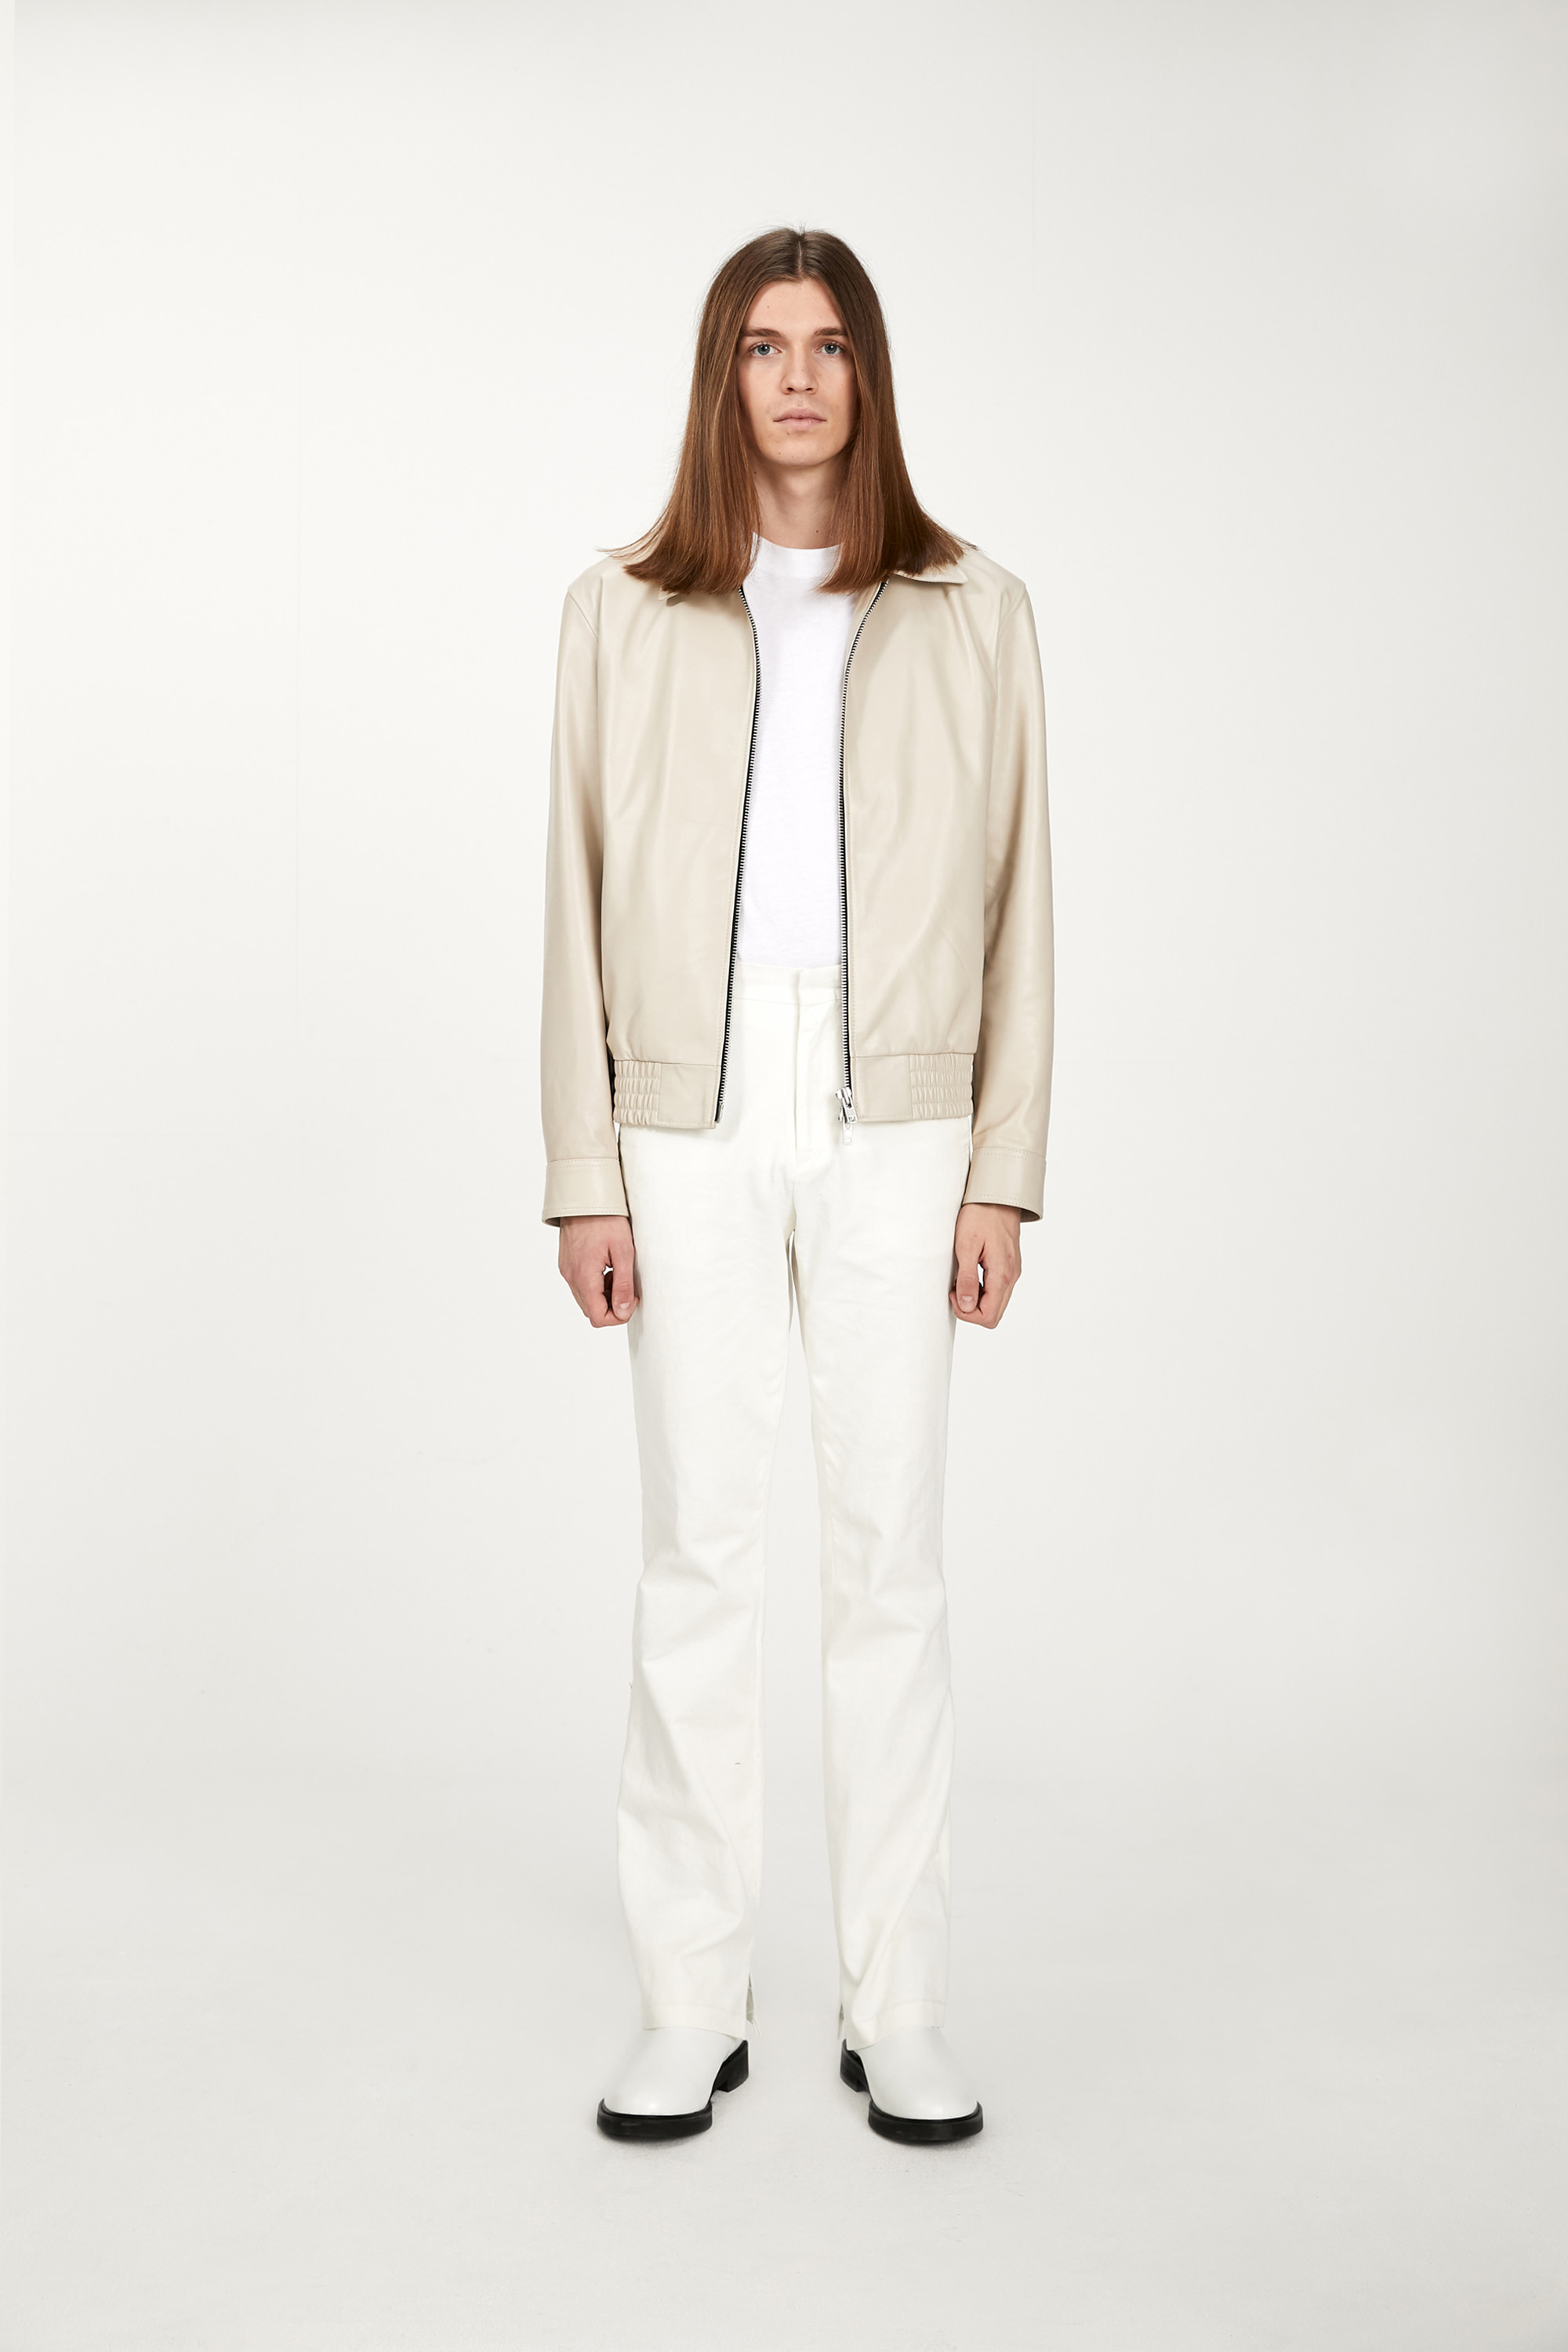 Lambskin zip-up jacket(ivory)